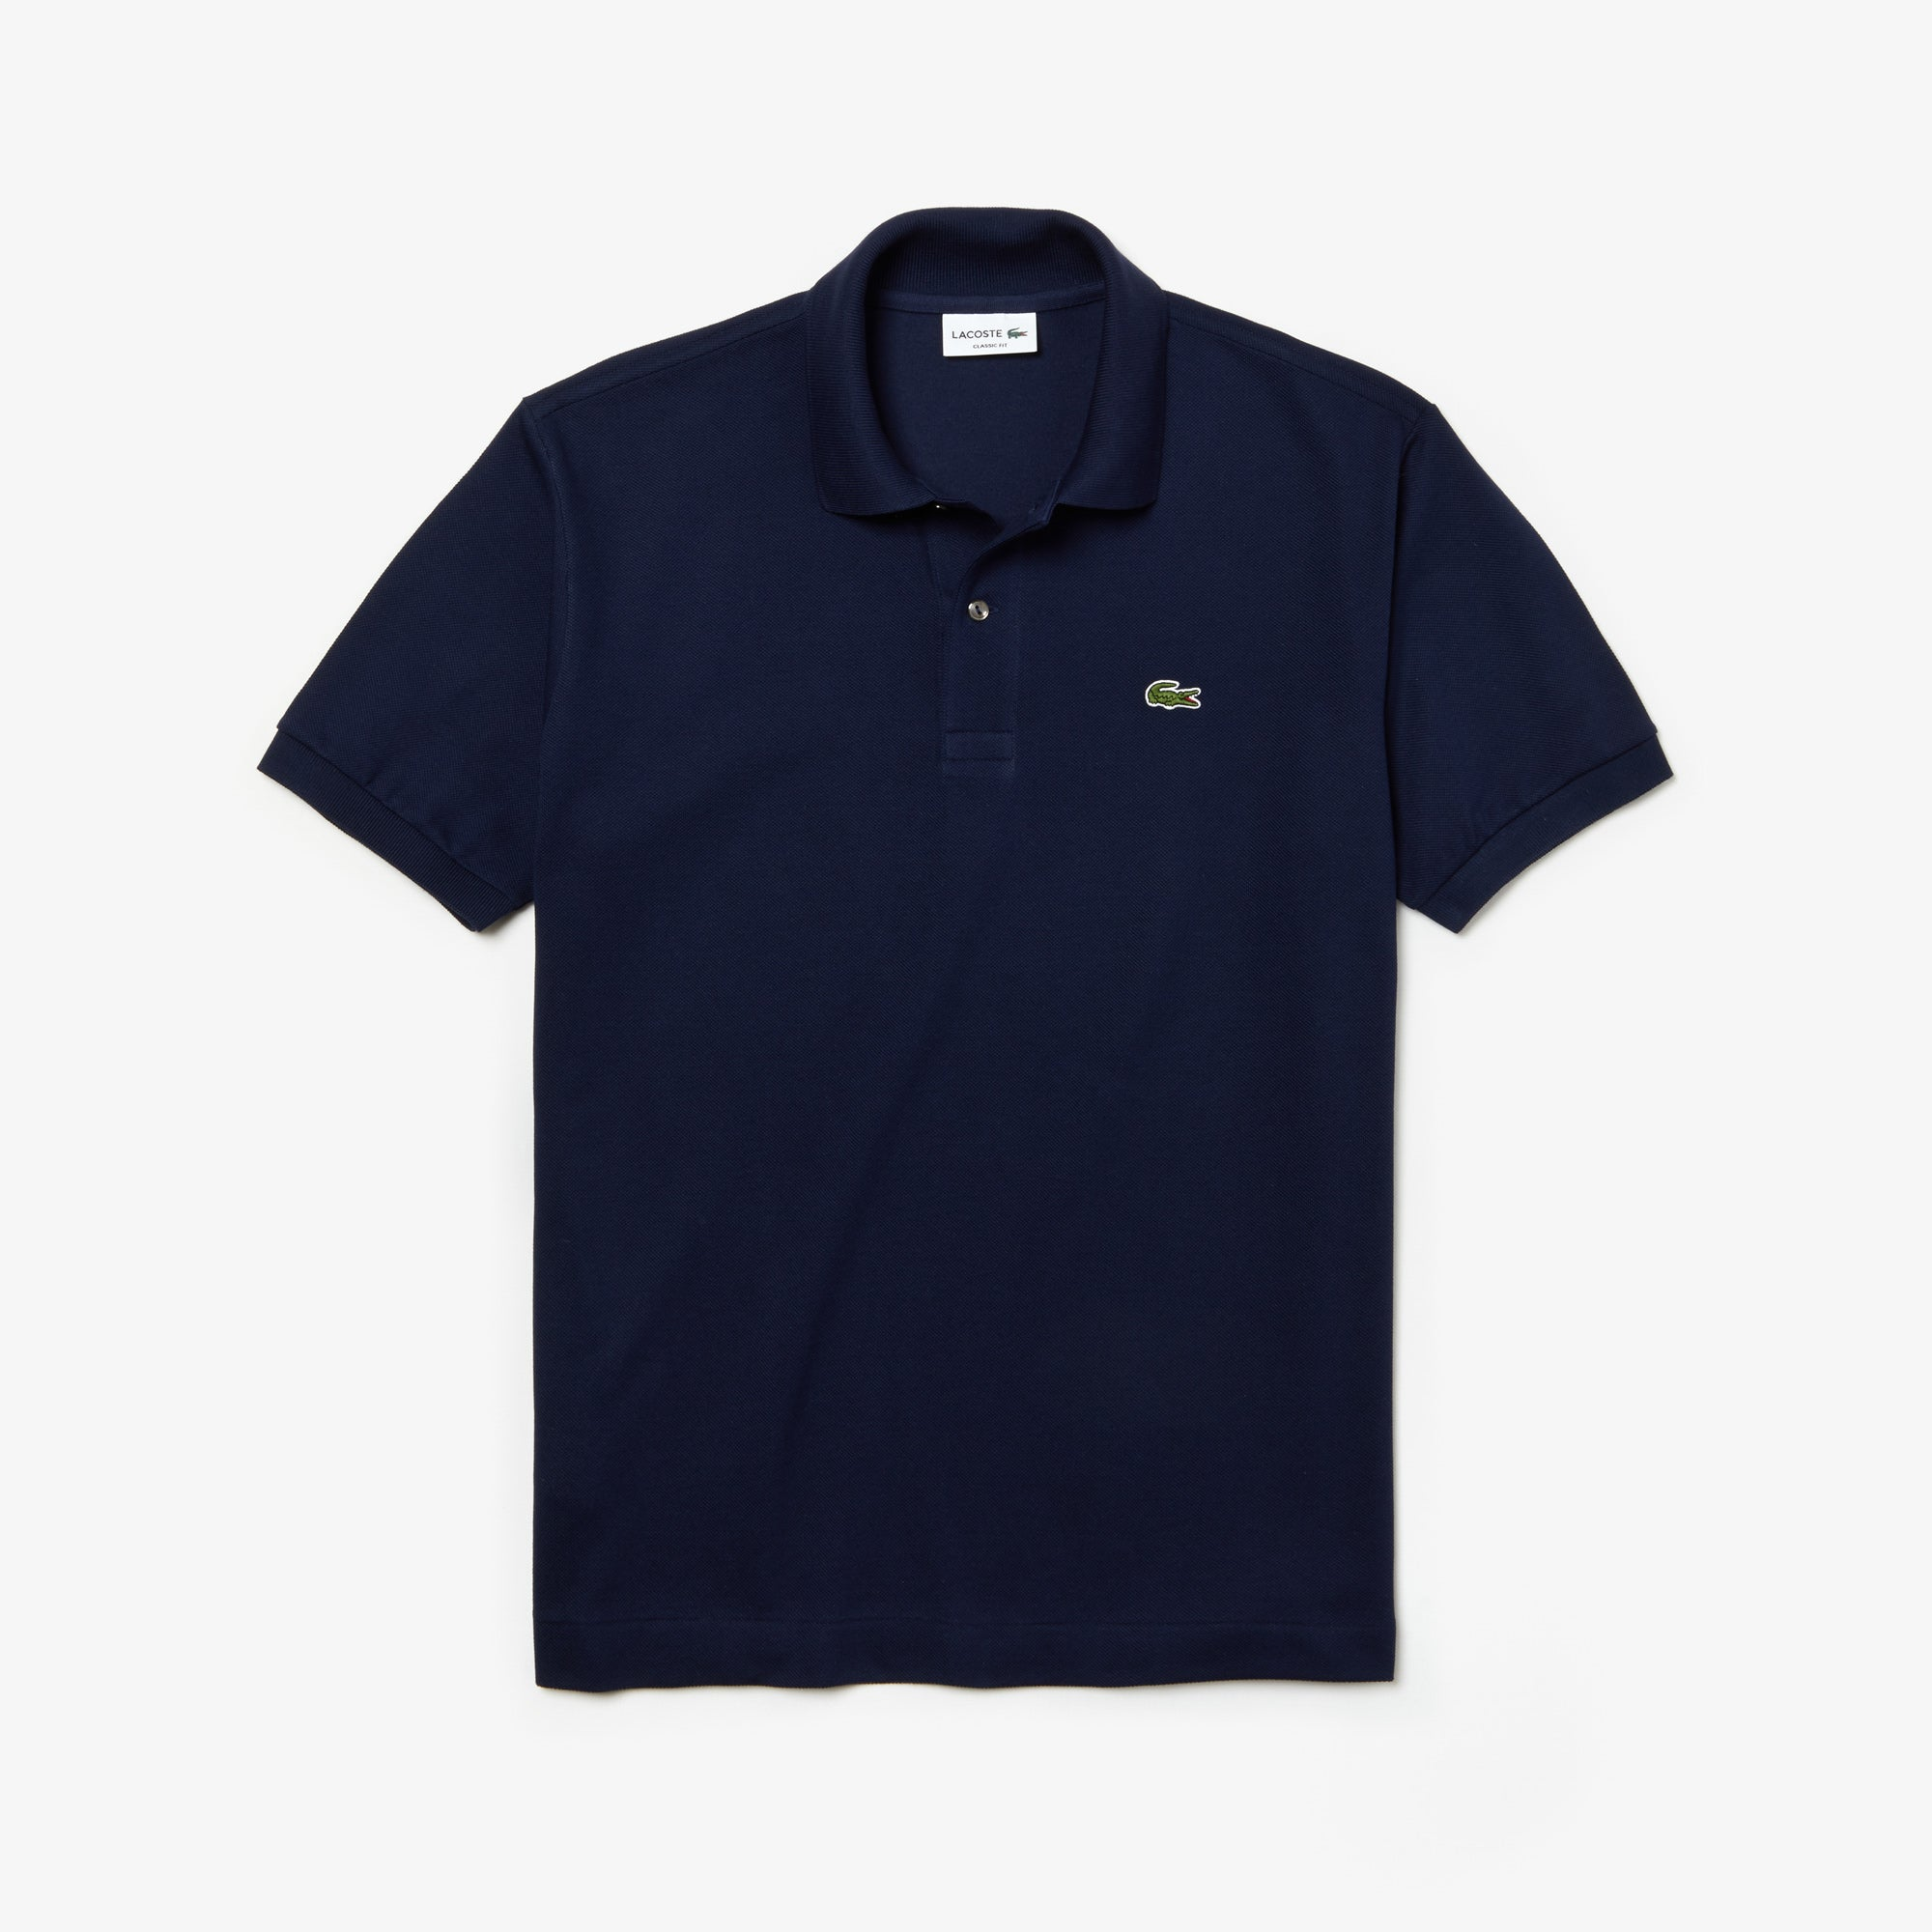 Lacoste polo L1212 regular navy